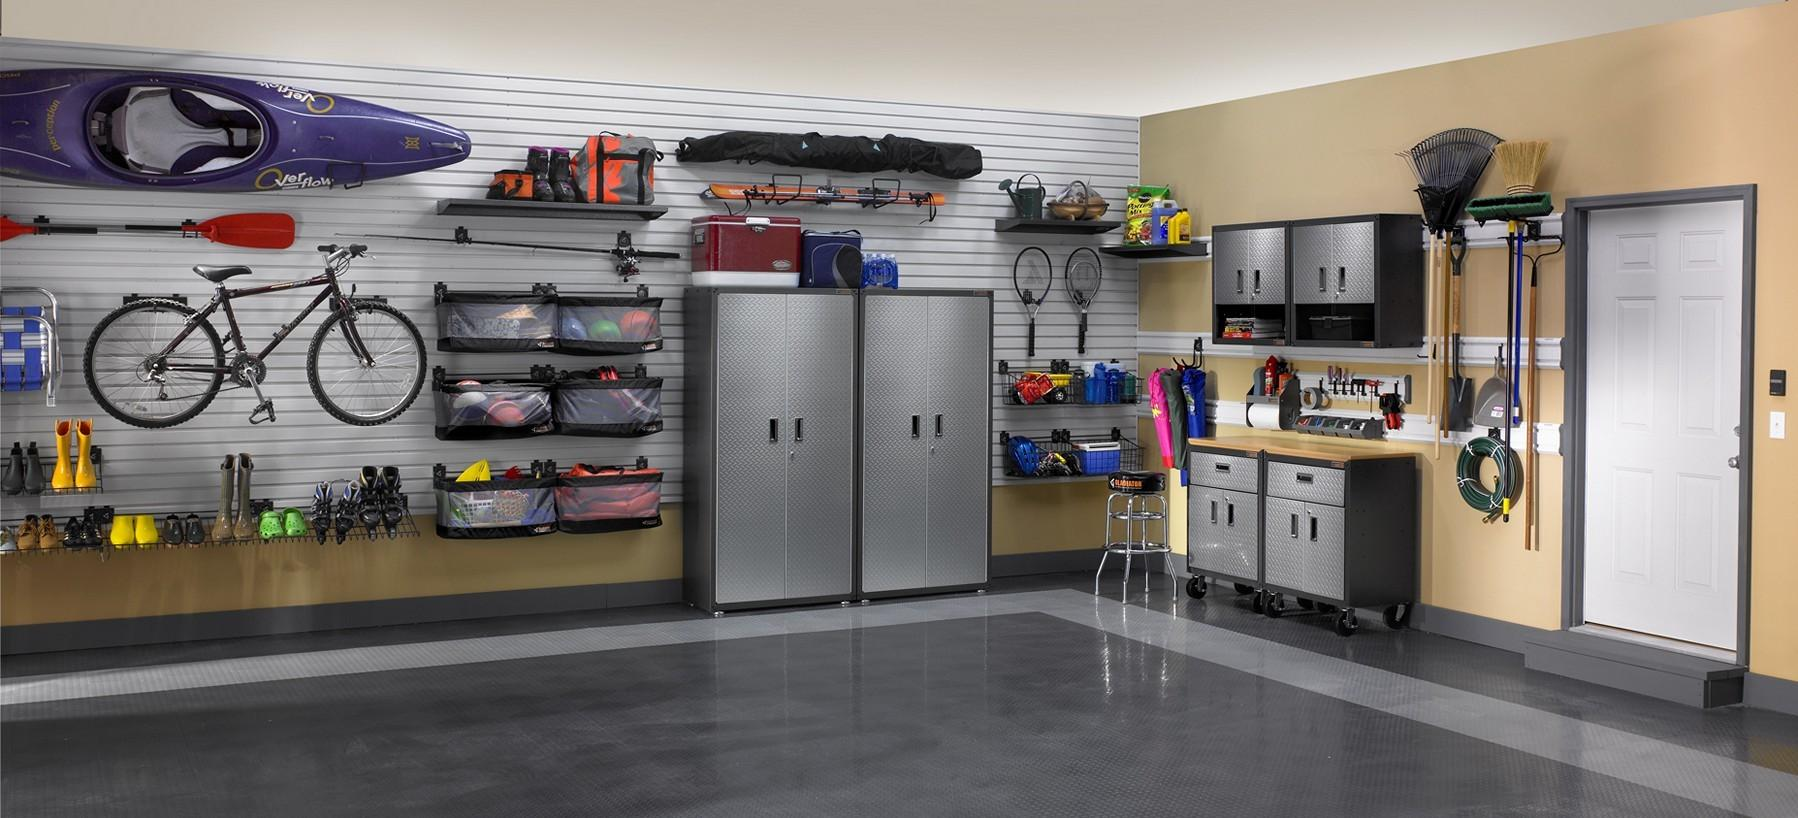 Garage Organization Ideas Pegboard Trend Home